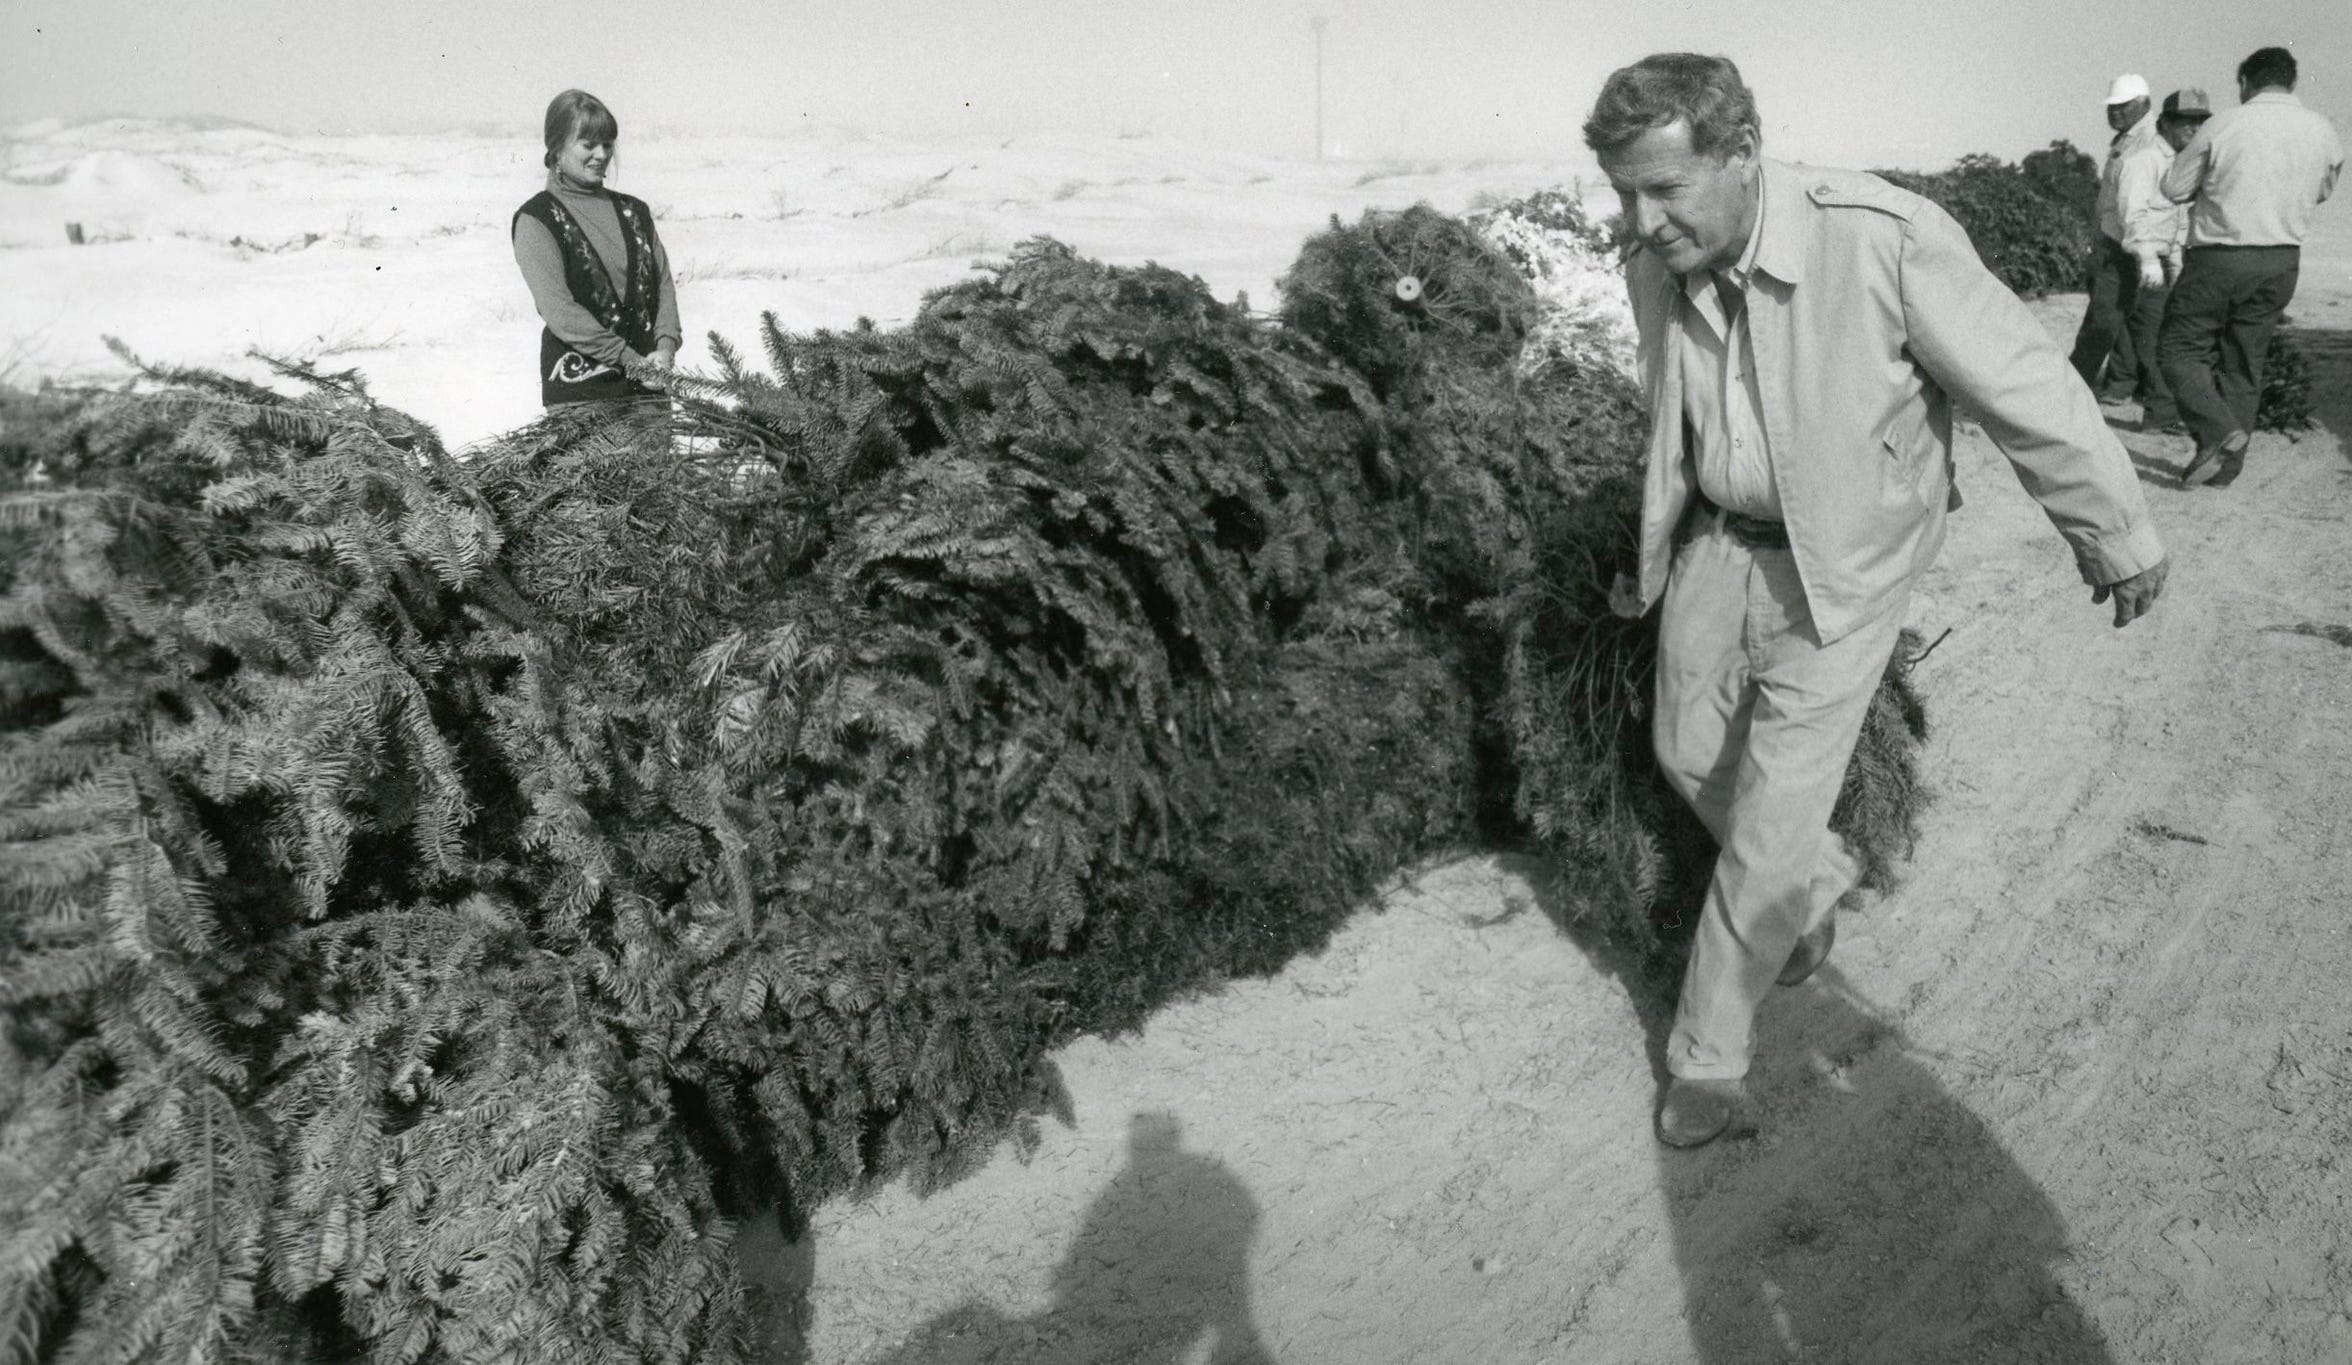 Nueces County Precinct 4 Commissioner J.P. Luby drags a discarded Christmas tree to add to a pile arranged to trap sand and form dunes on Padre Island on Dec. 28, 1990. When this photo was snapped, Luby had only three days left on the job he'd held for nearly 16 years.